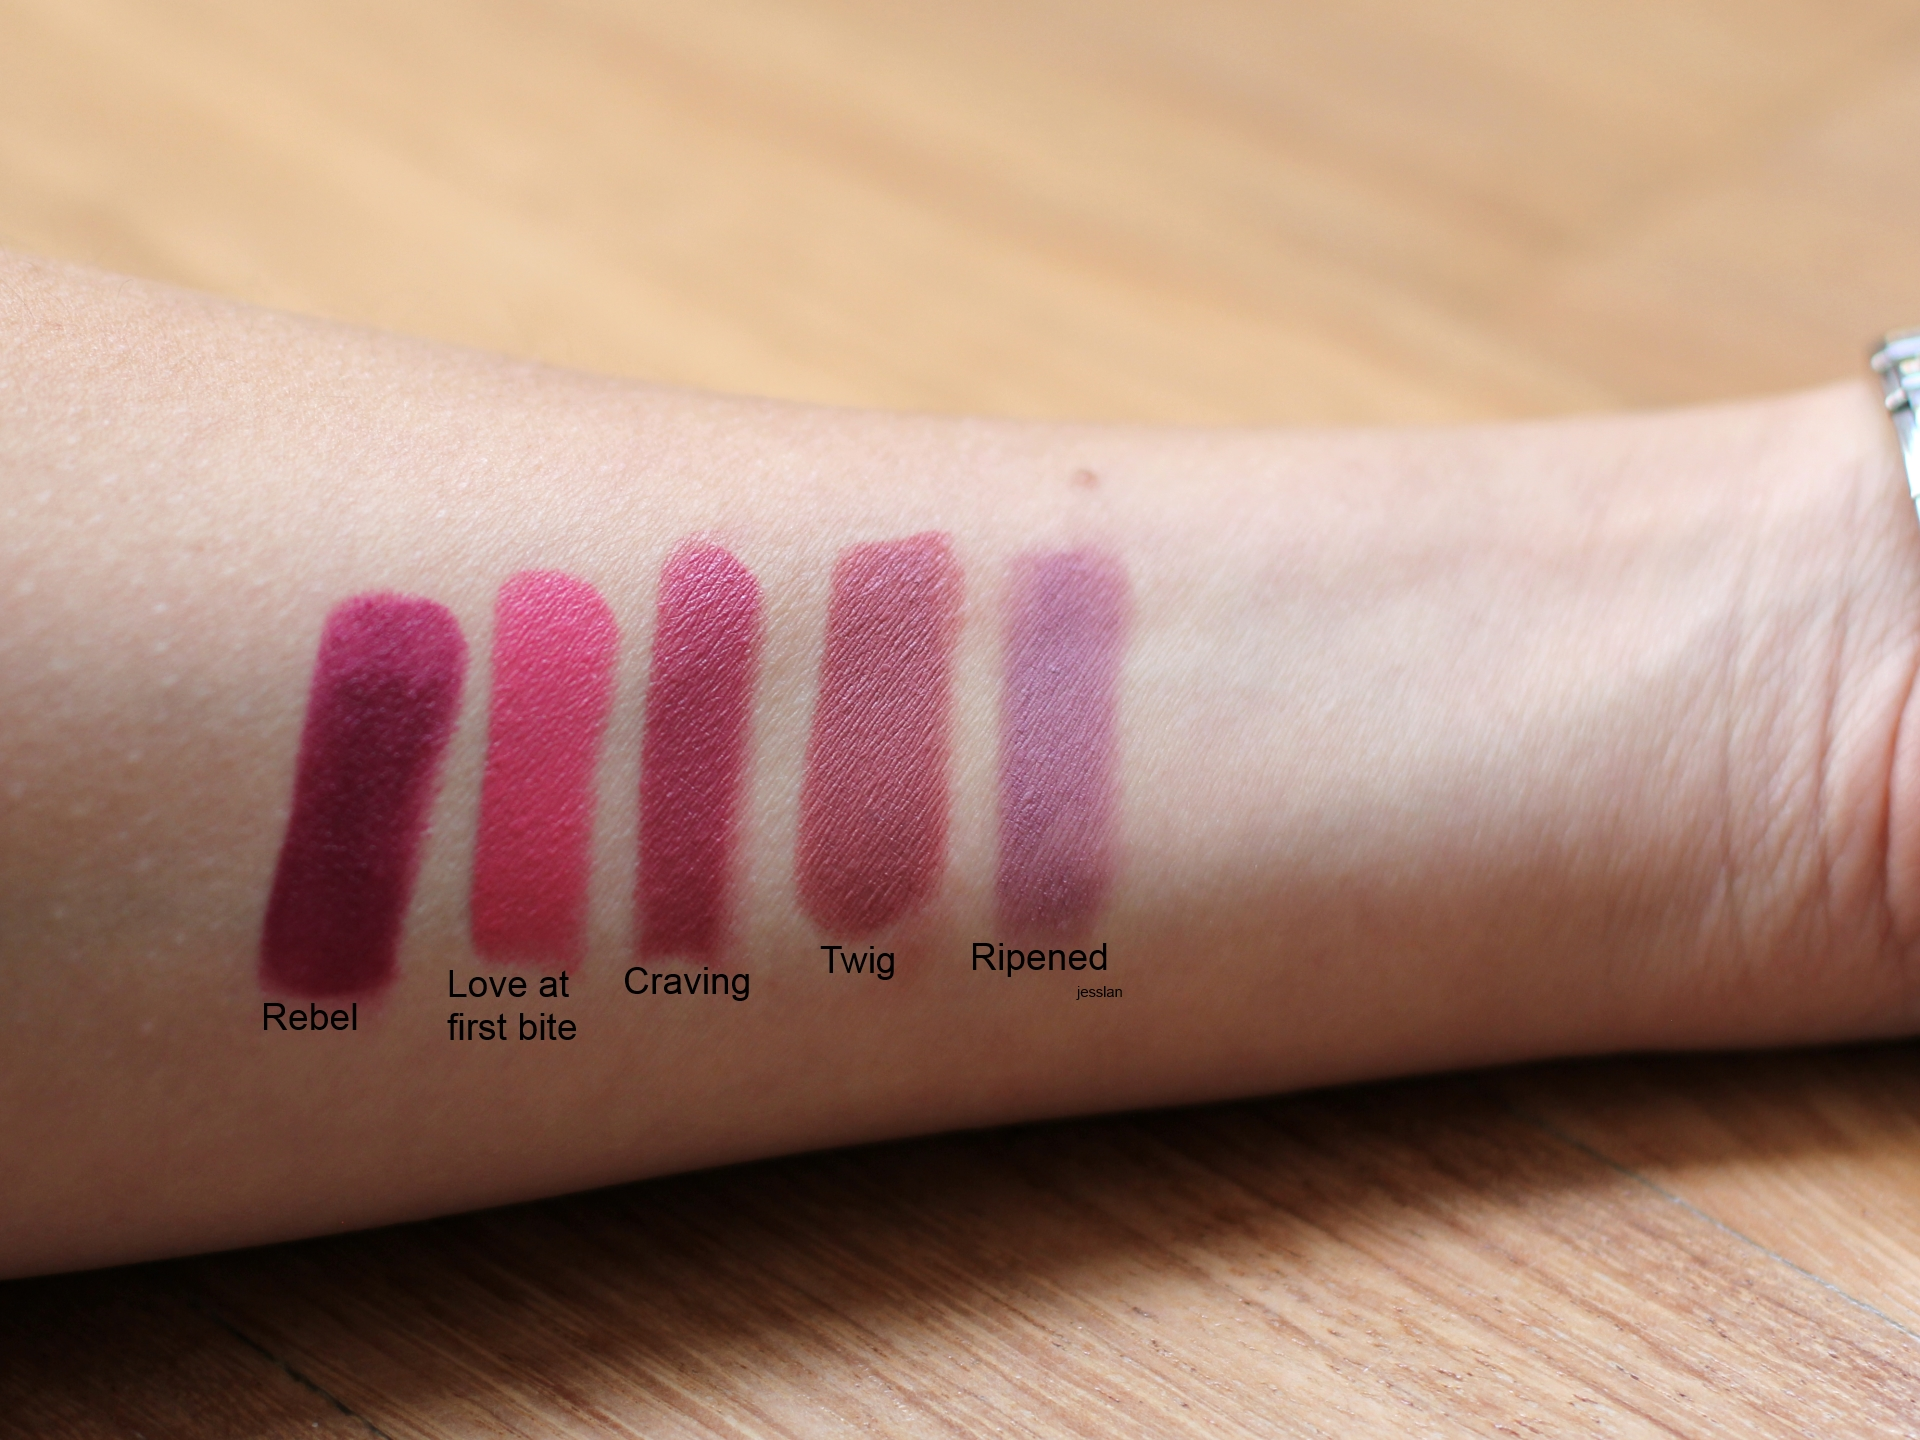 Mac Cosmetics - Swatch rossetti Rebel, Love at first bite, Craving, Twig e Ripened (da sinistra)